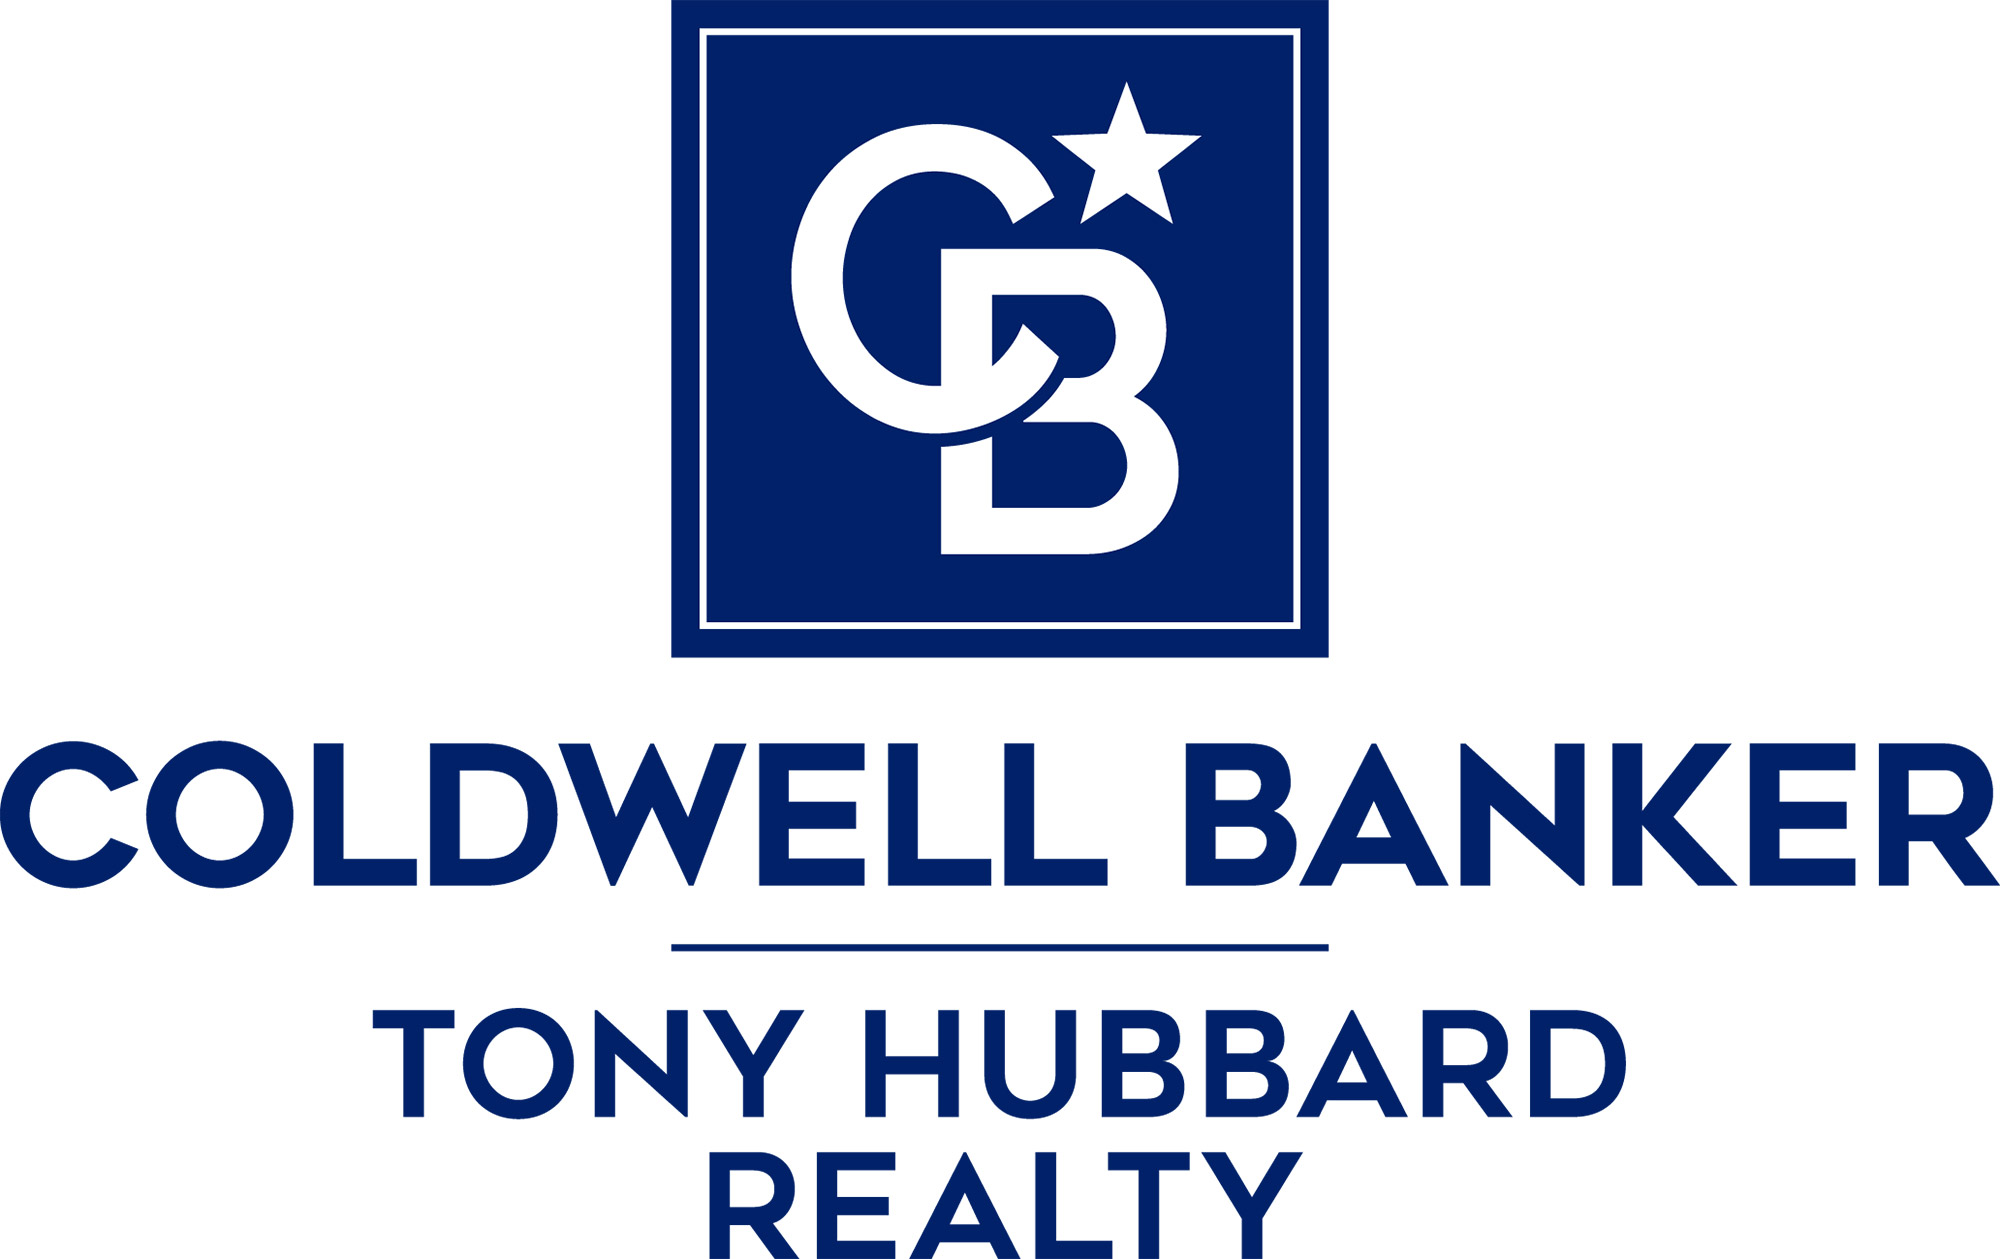 Wes Wilkins - Coldwell Banker Tony Hubbard Logo